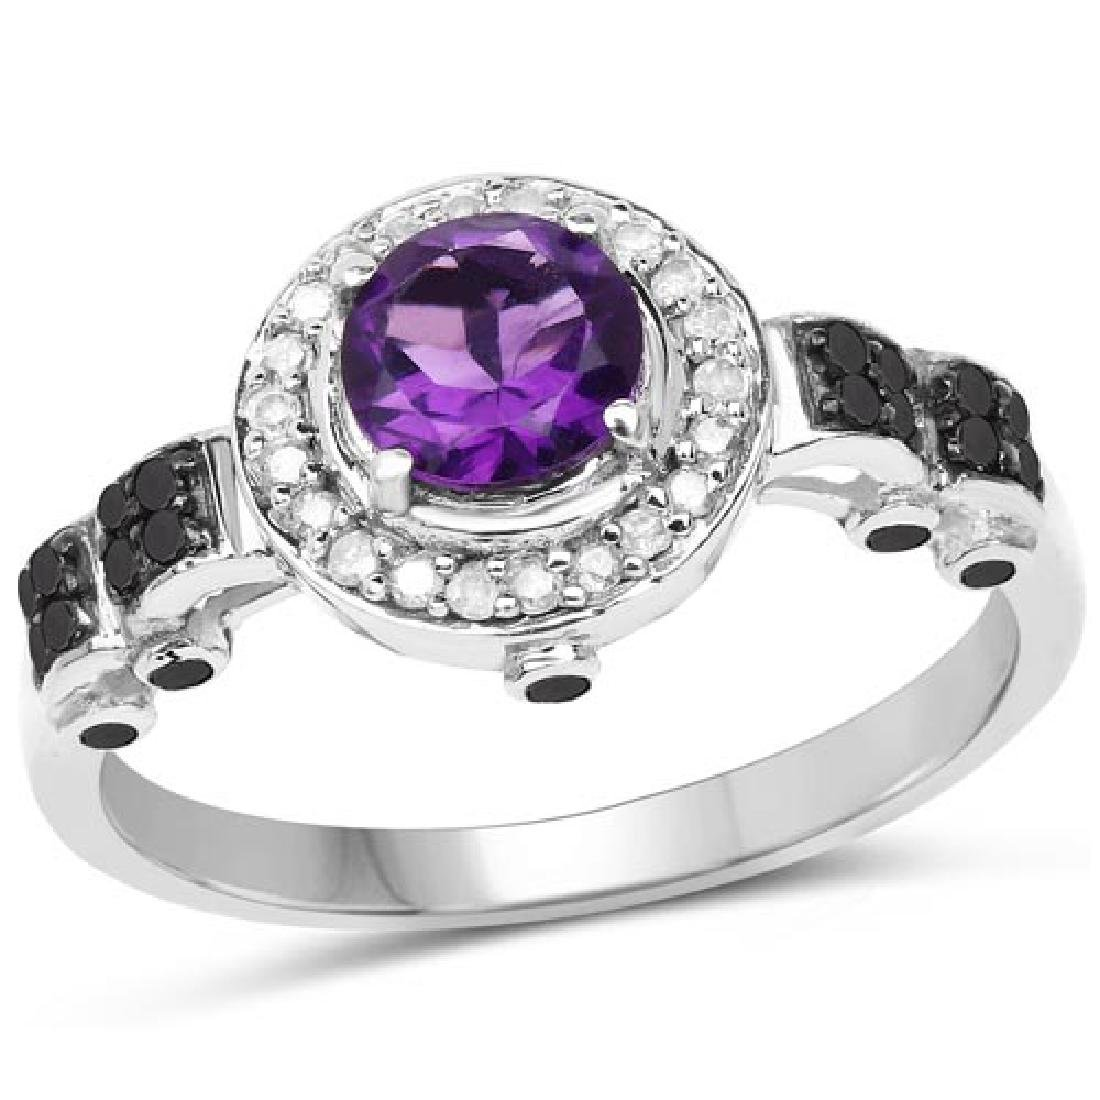 1.02 Carat Genuine Amethyst Black Diamond and White Di